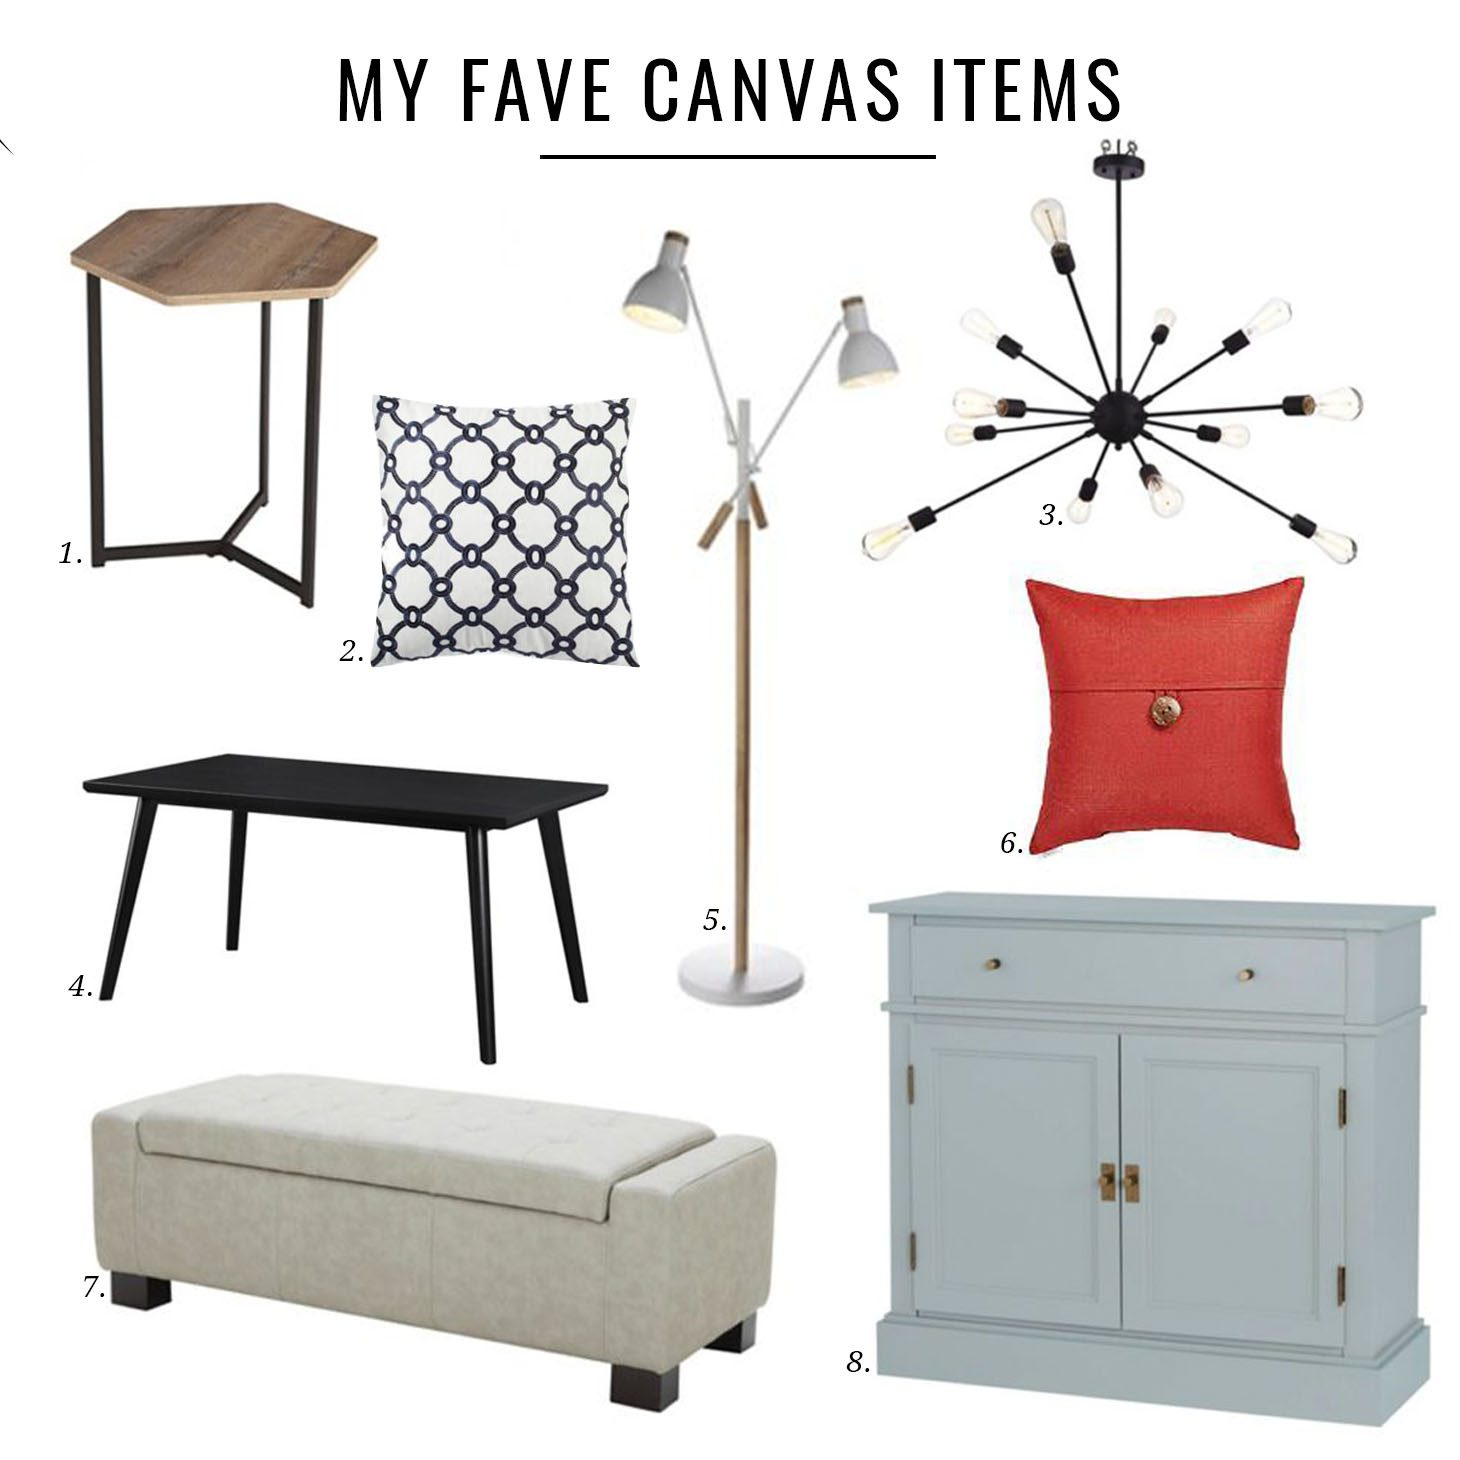 JILLIAN HARRIS X CANADIAN TIRE CANVAS